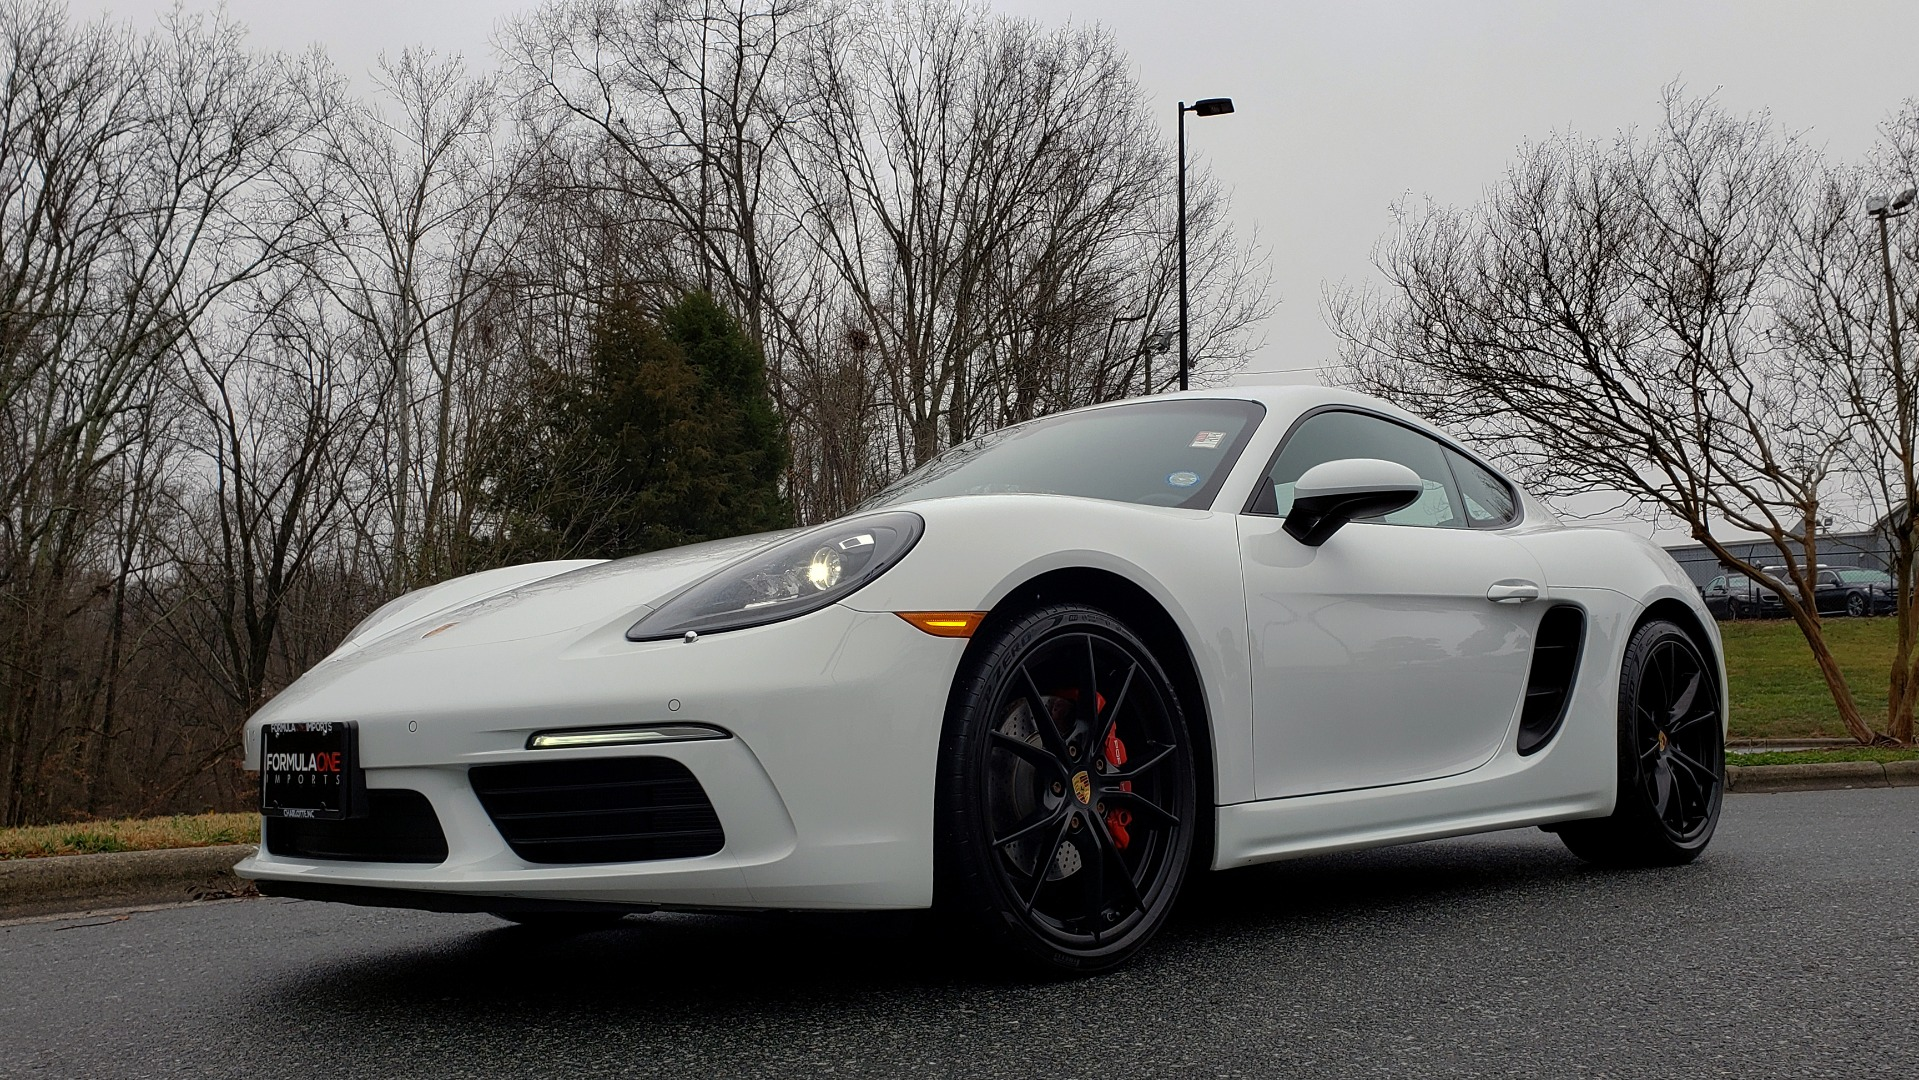 Used 2017 Porsche 718 CAYMAN S / NAV / BOSE / PDK / RWD / VENT STS / REARVIEW for sale Sold at Formula Imports in Charlotte NC 28227 4